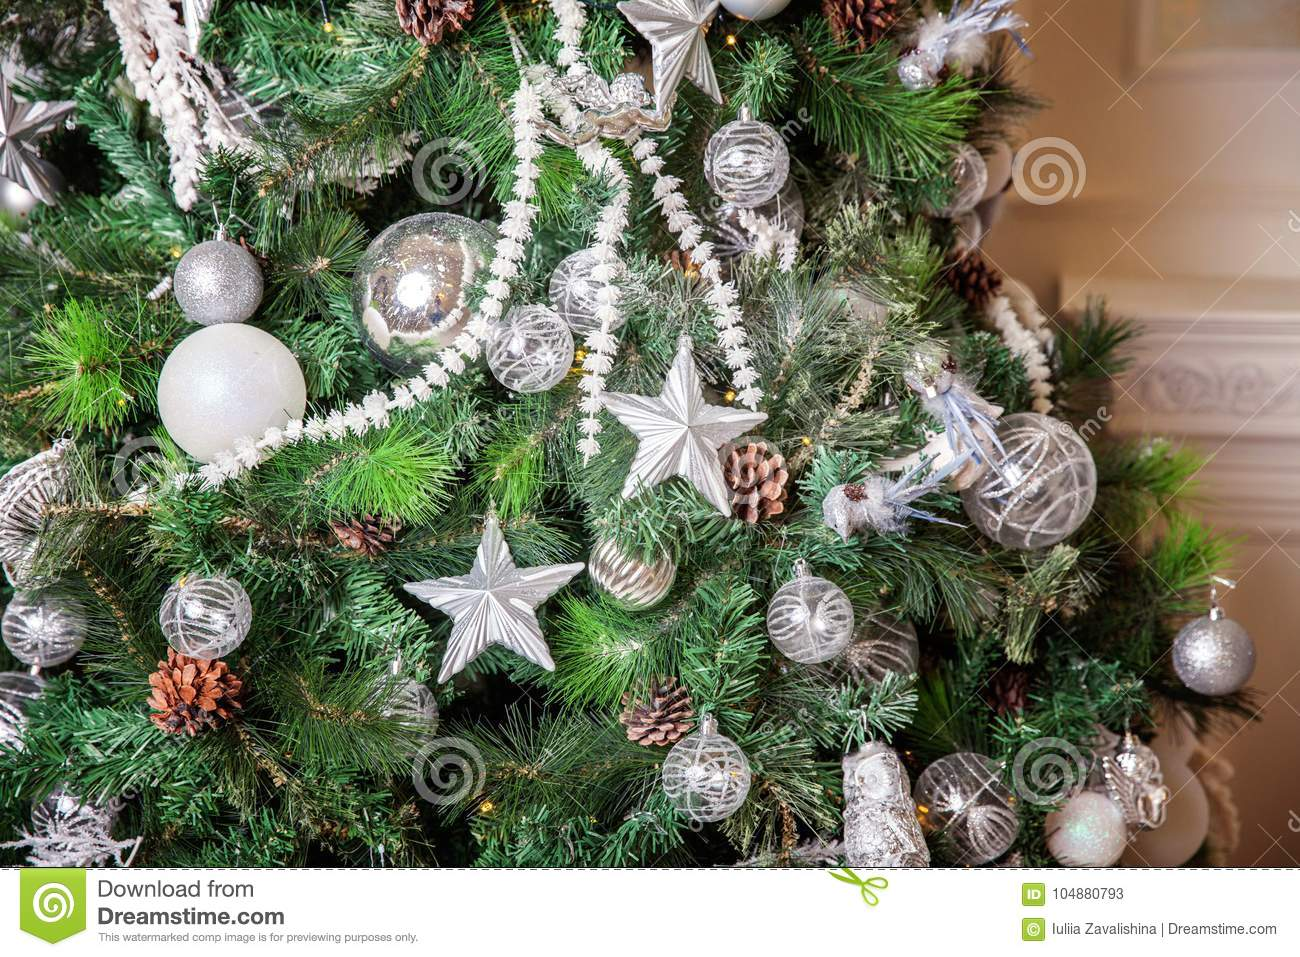 christmas tree with white and silver decorations - How To Decorate A White And Silver Christmas Tree